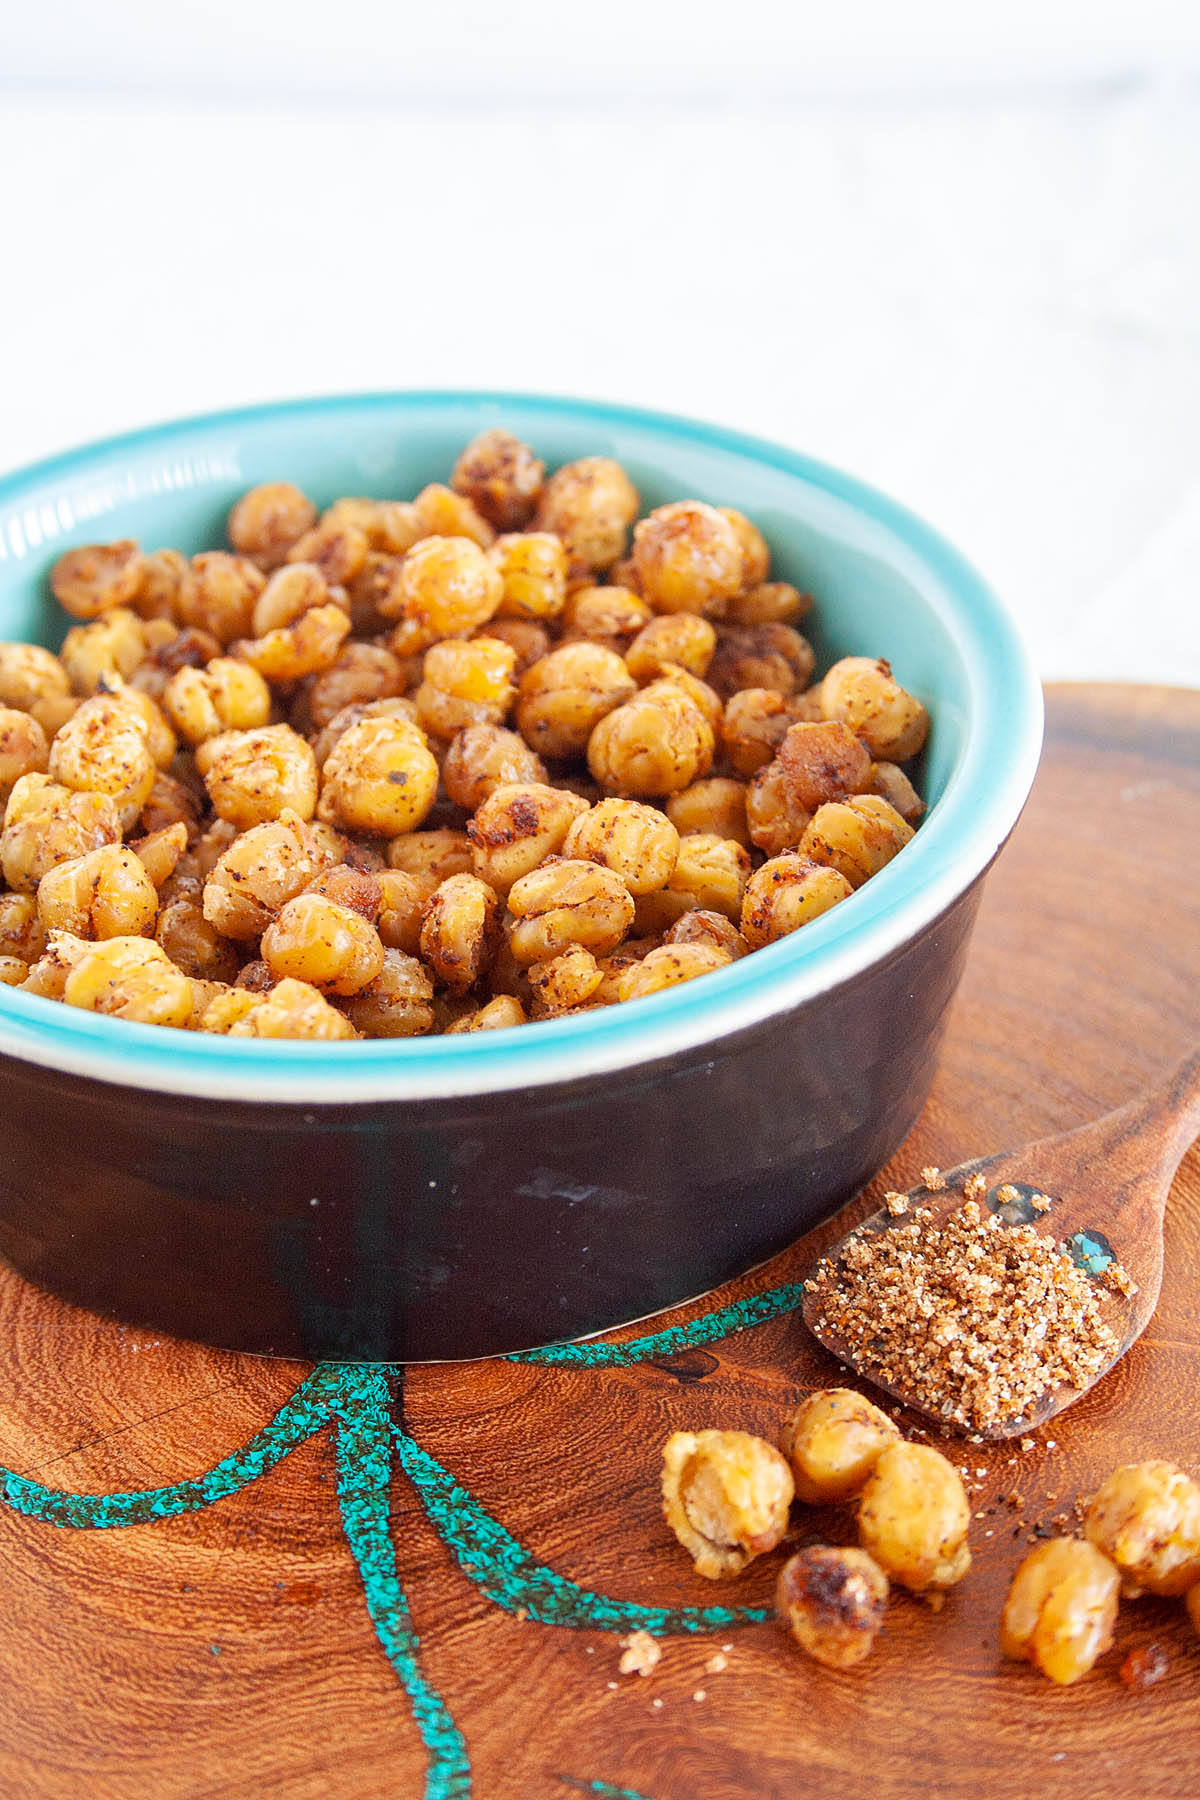 BBQ Roasted Chickpeas close up with spoonful of BBQ seasoning next to it.